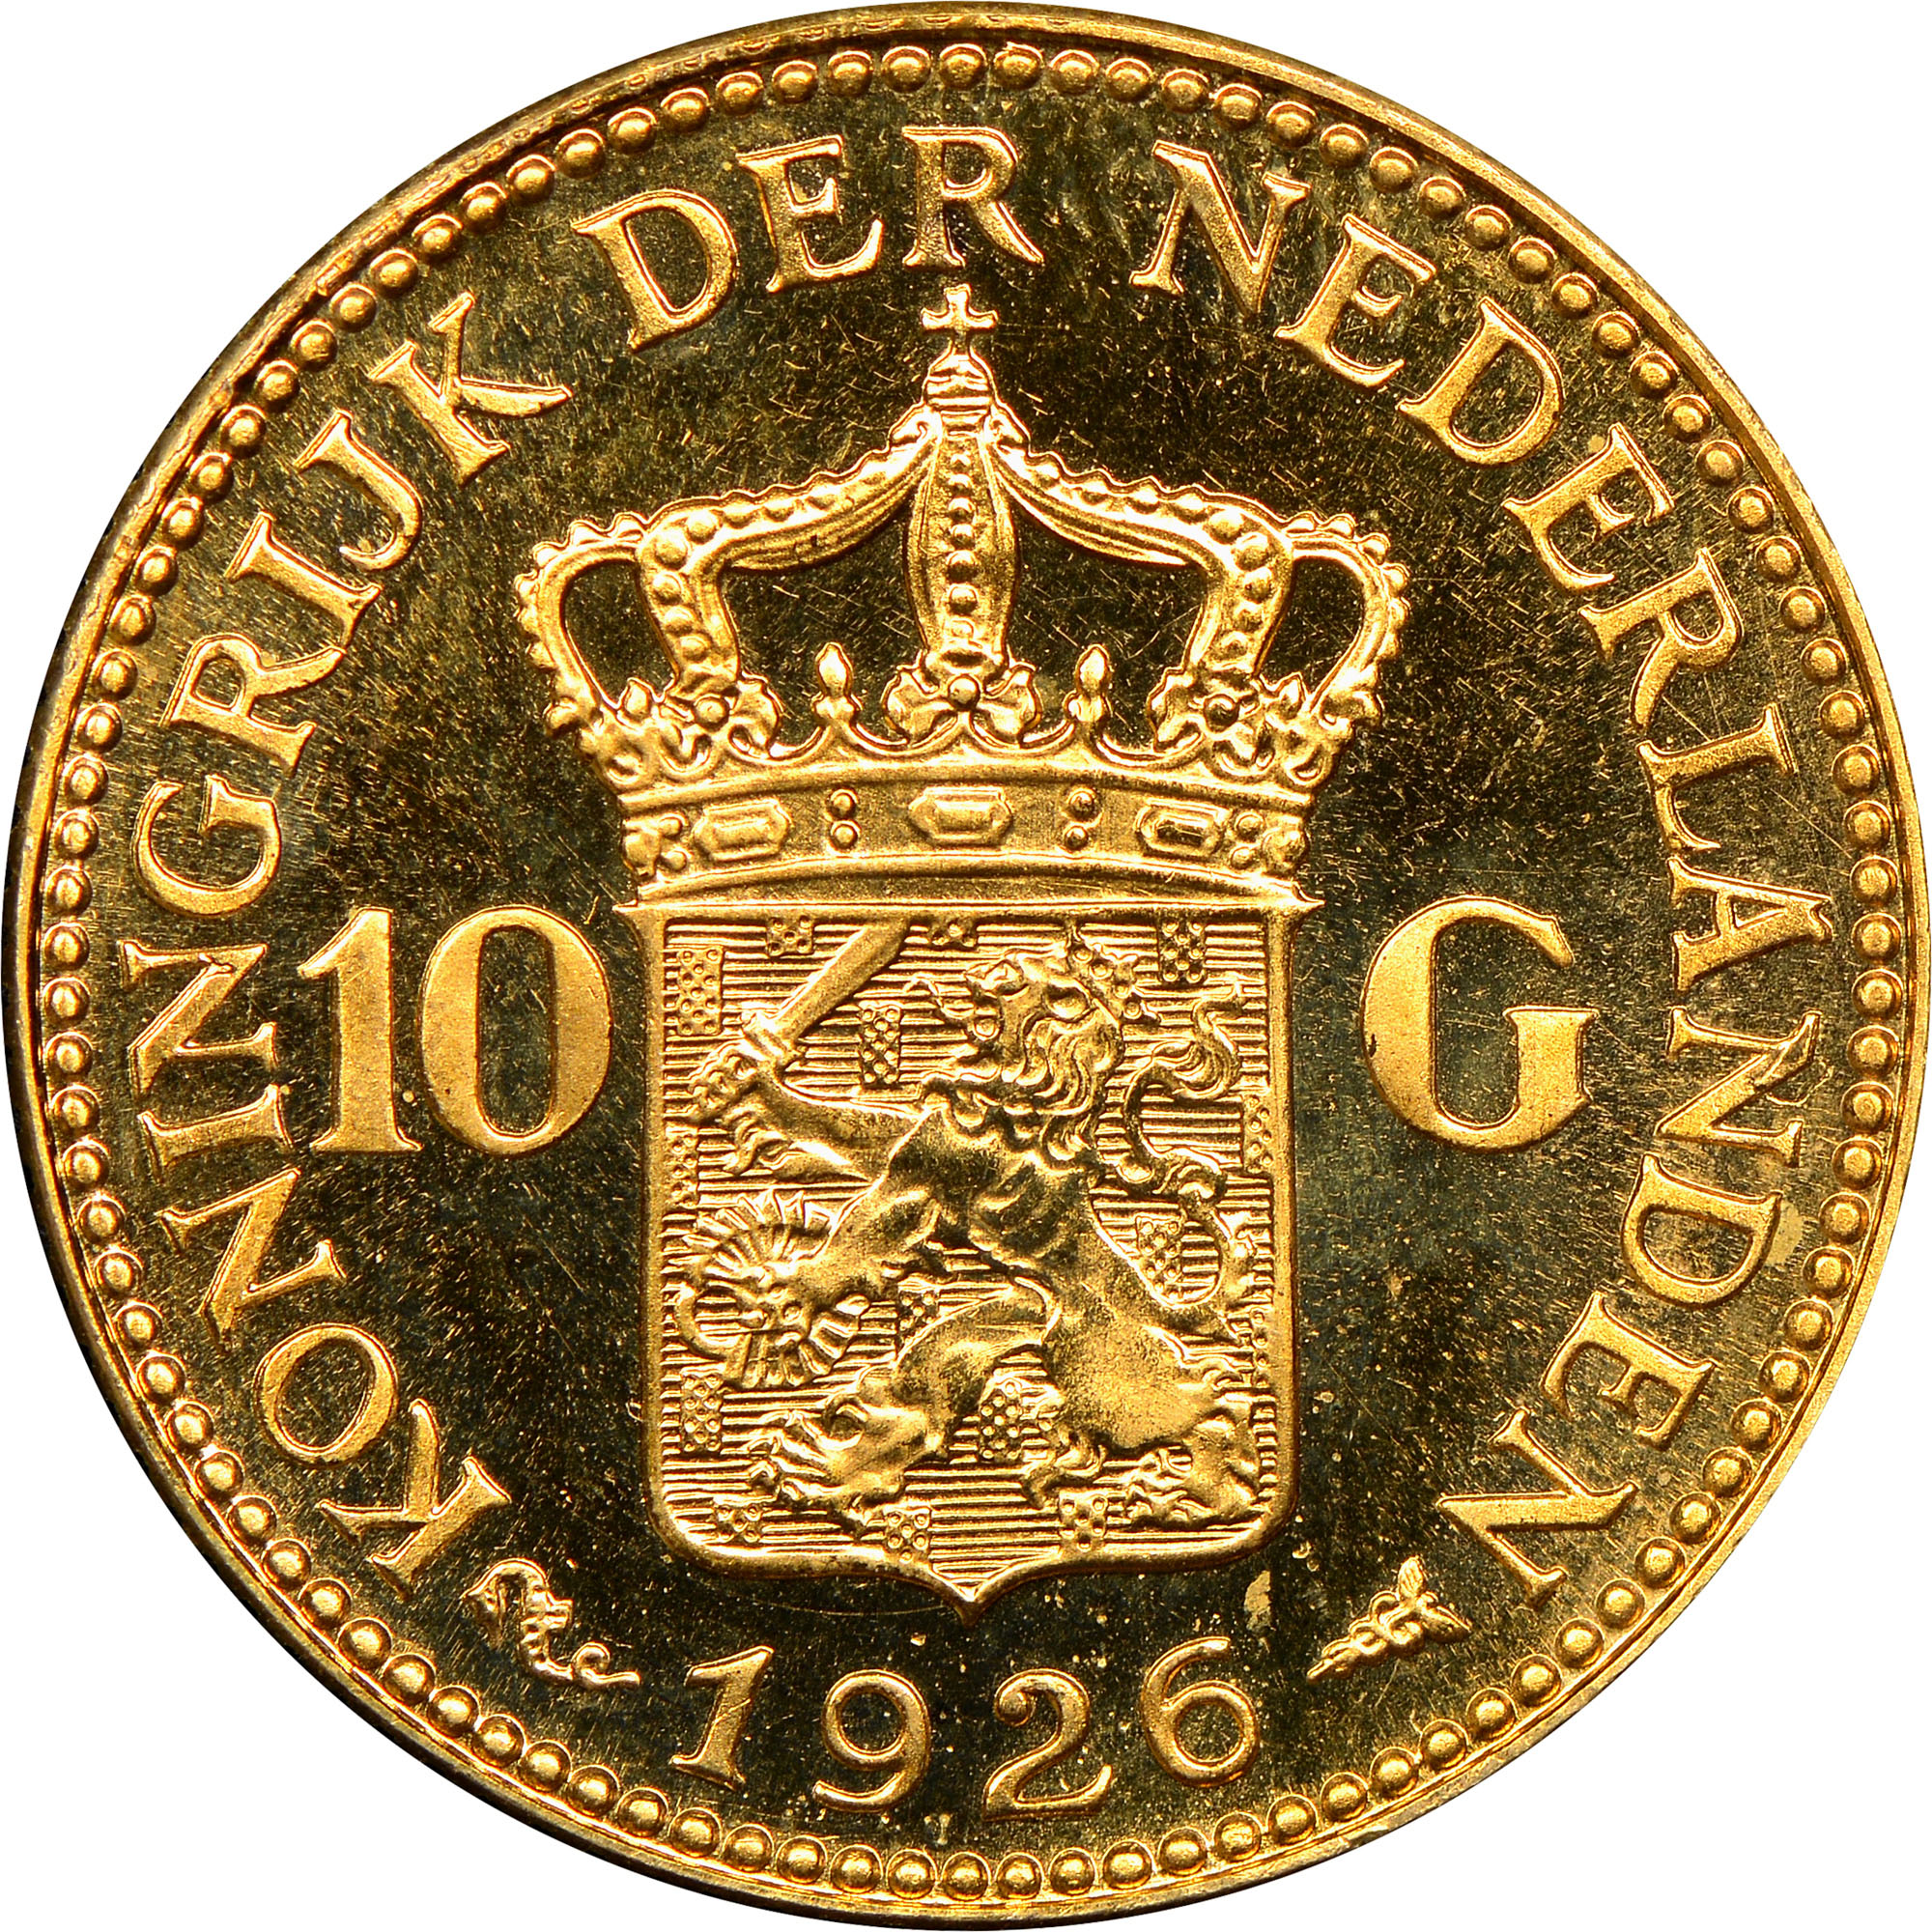 Details about  /Netherlands 1925-1 Cent Bronze Coin Crowned arms with 17 small shields